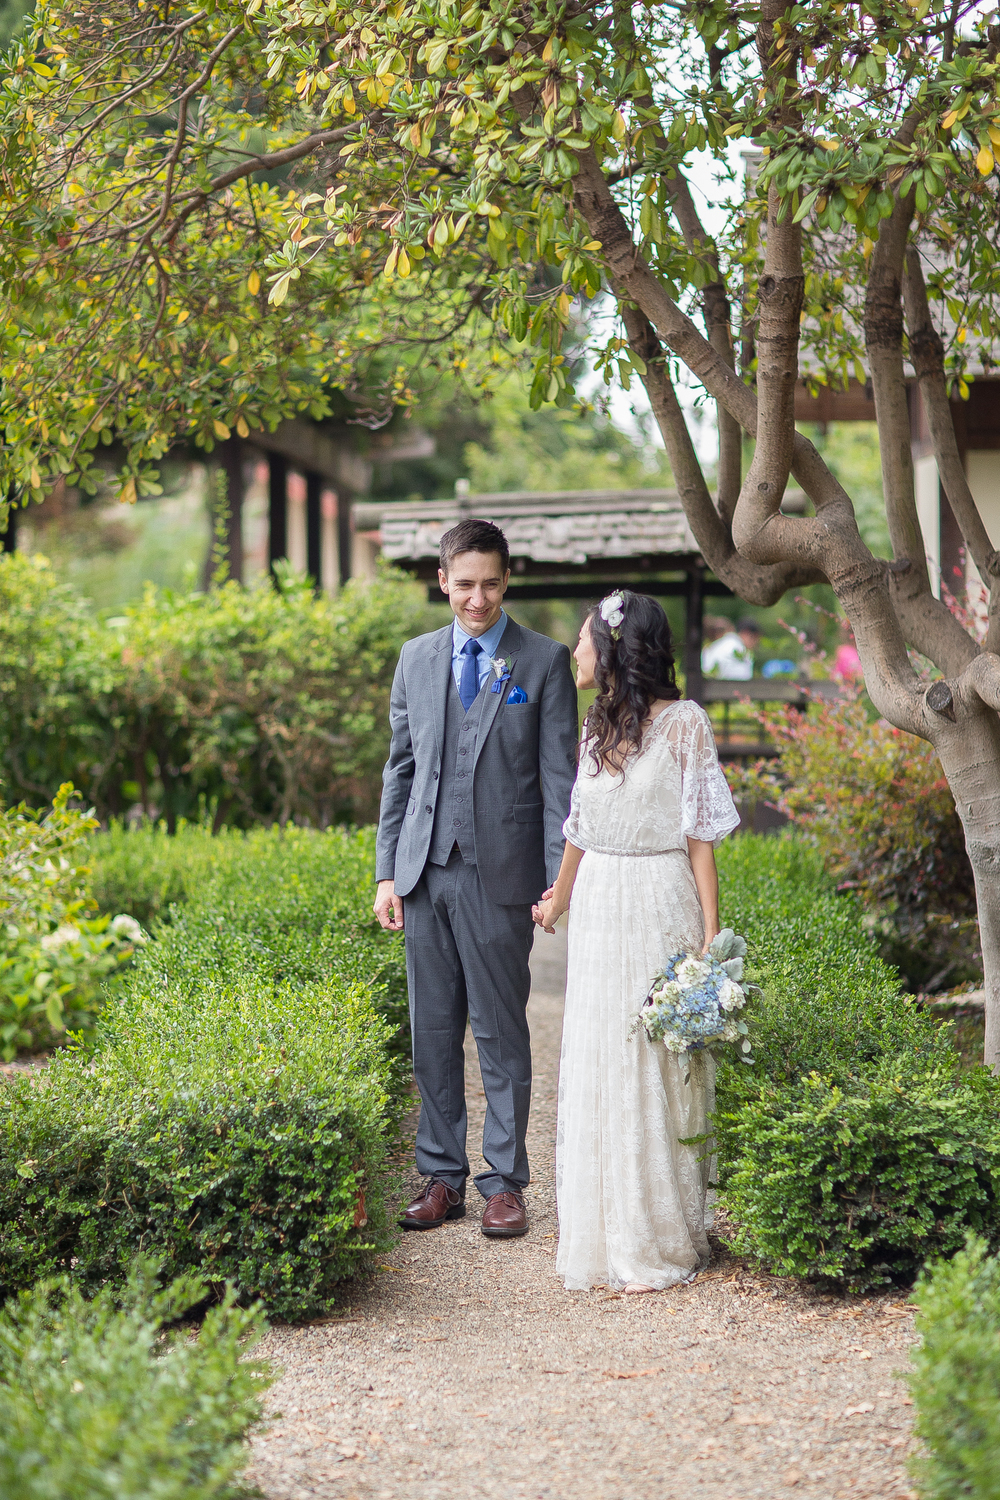 Chico California Wedding and Engagement Photography by TréCreative - Fremont Wedding Photography (128 of 261).jpg